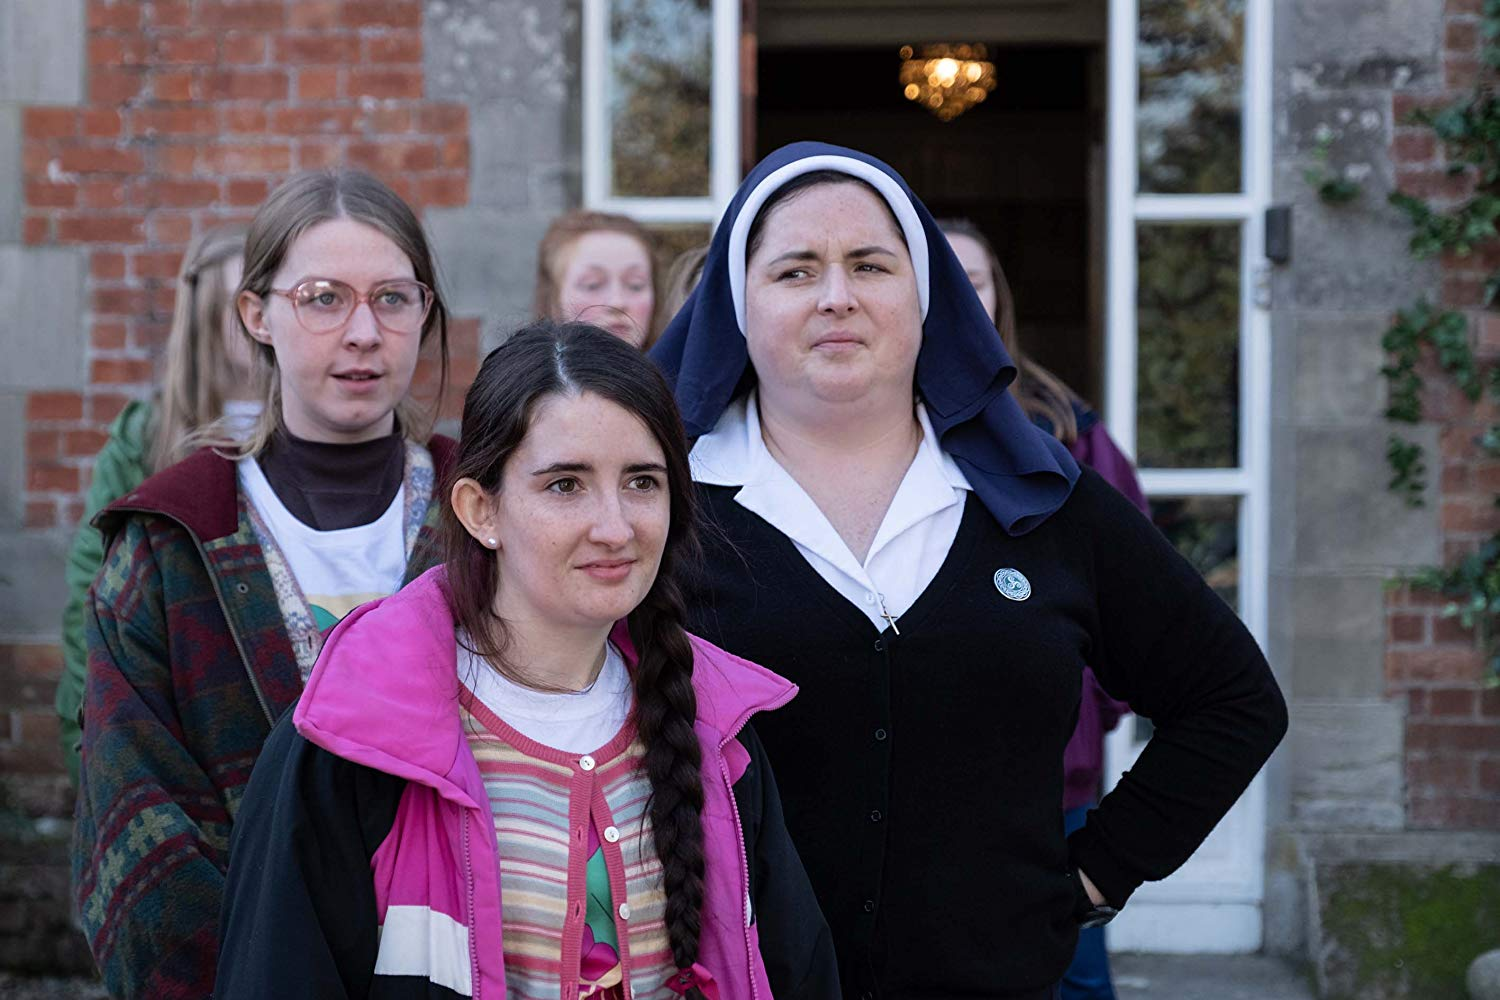 Derry Girls - Season 2